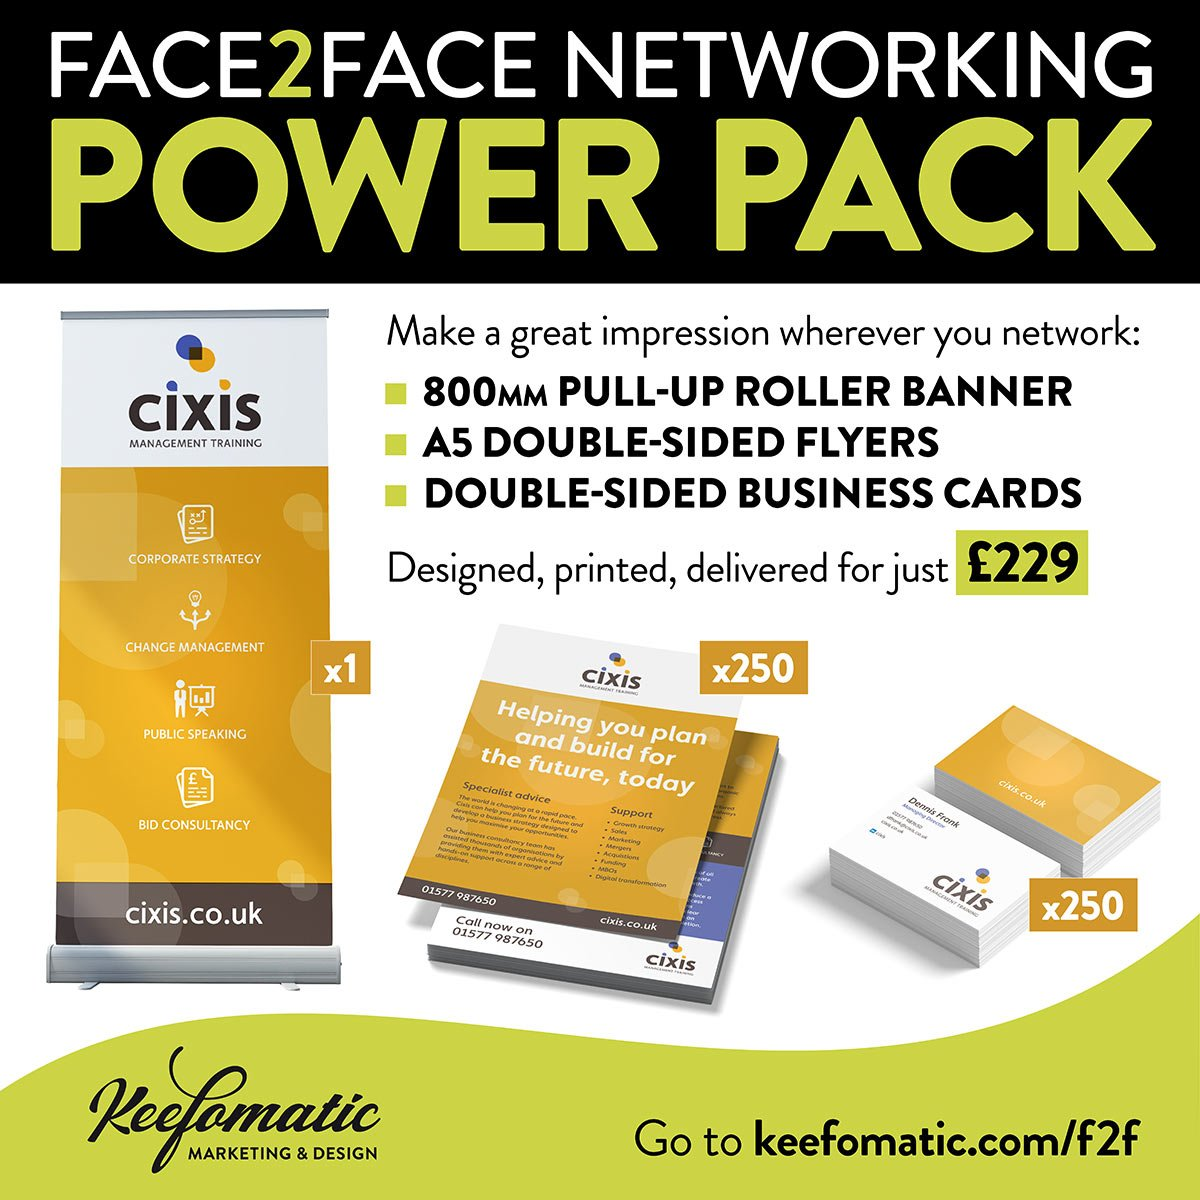 Face to face networking power pack